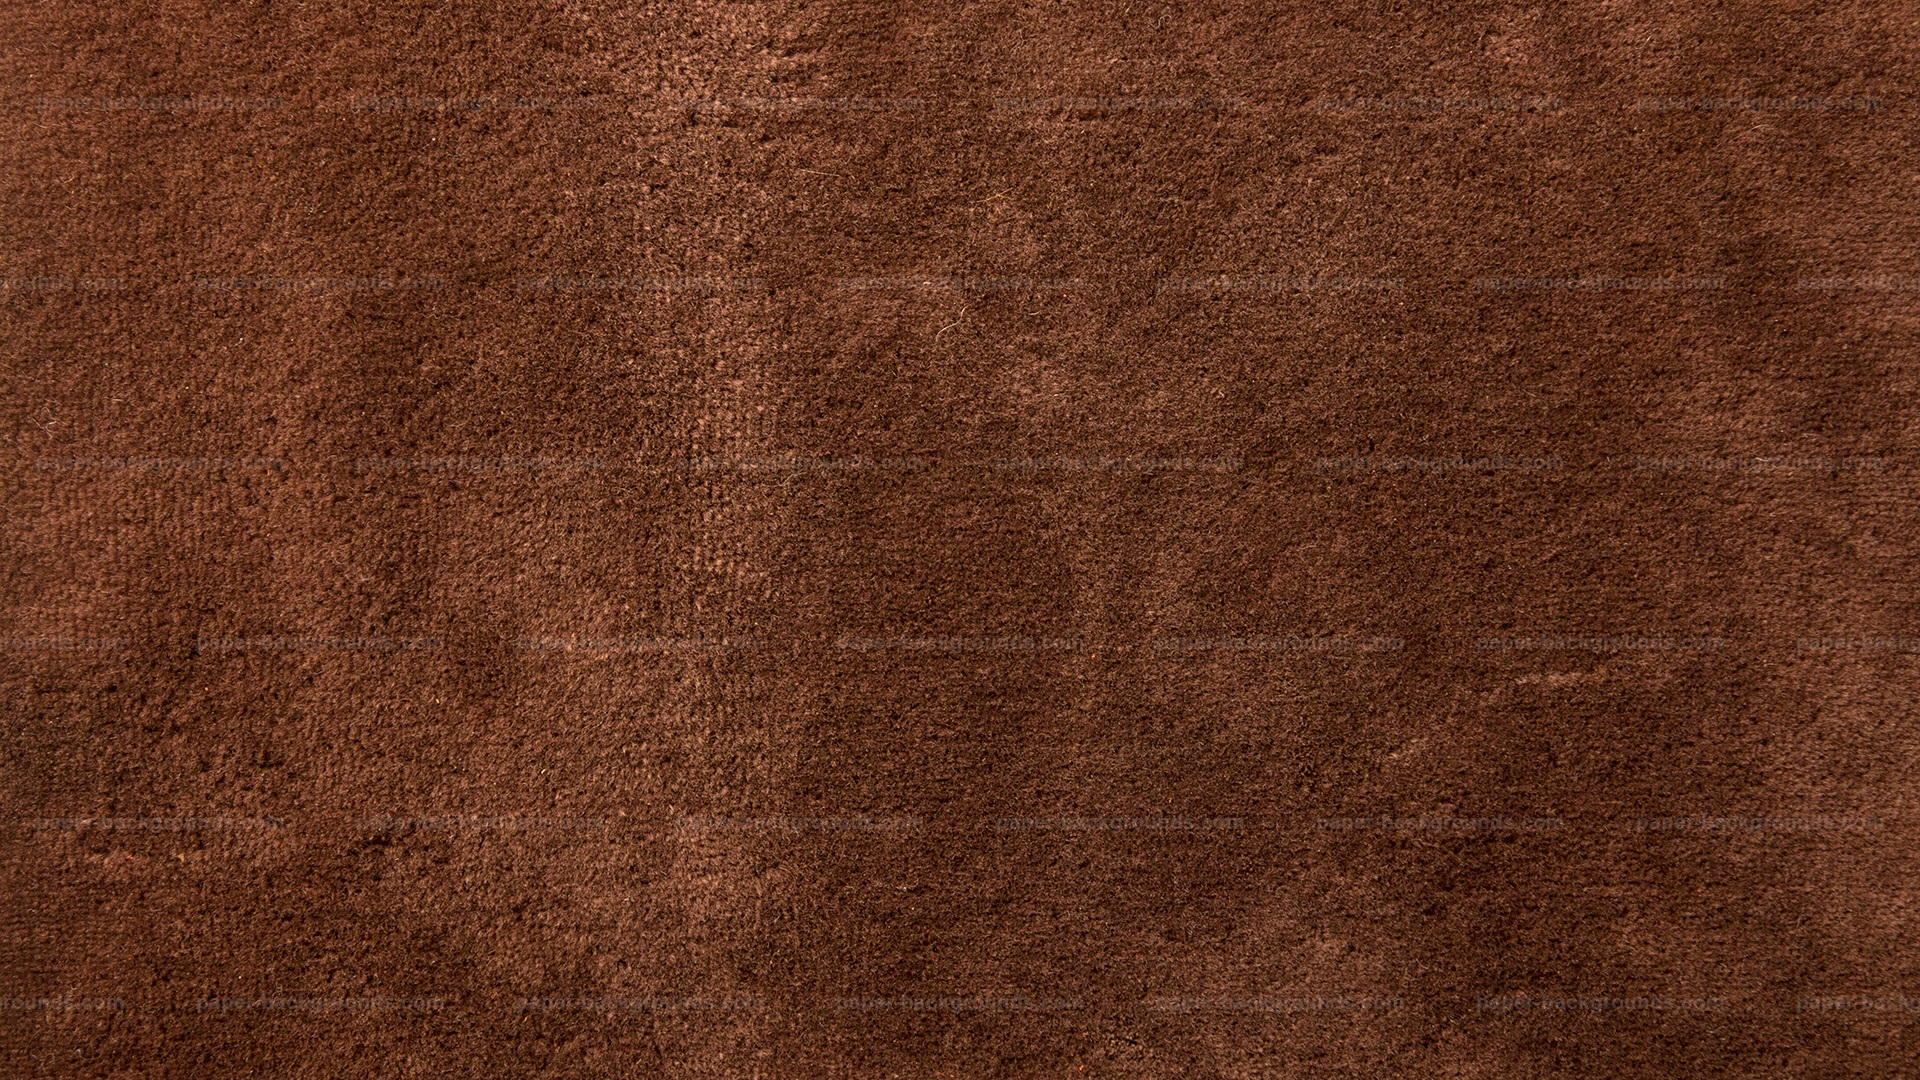 Brown Seamless Fabric Textures Light Brown Leather Texture Seamless Fabulous Light Brown Leather